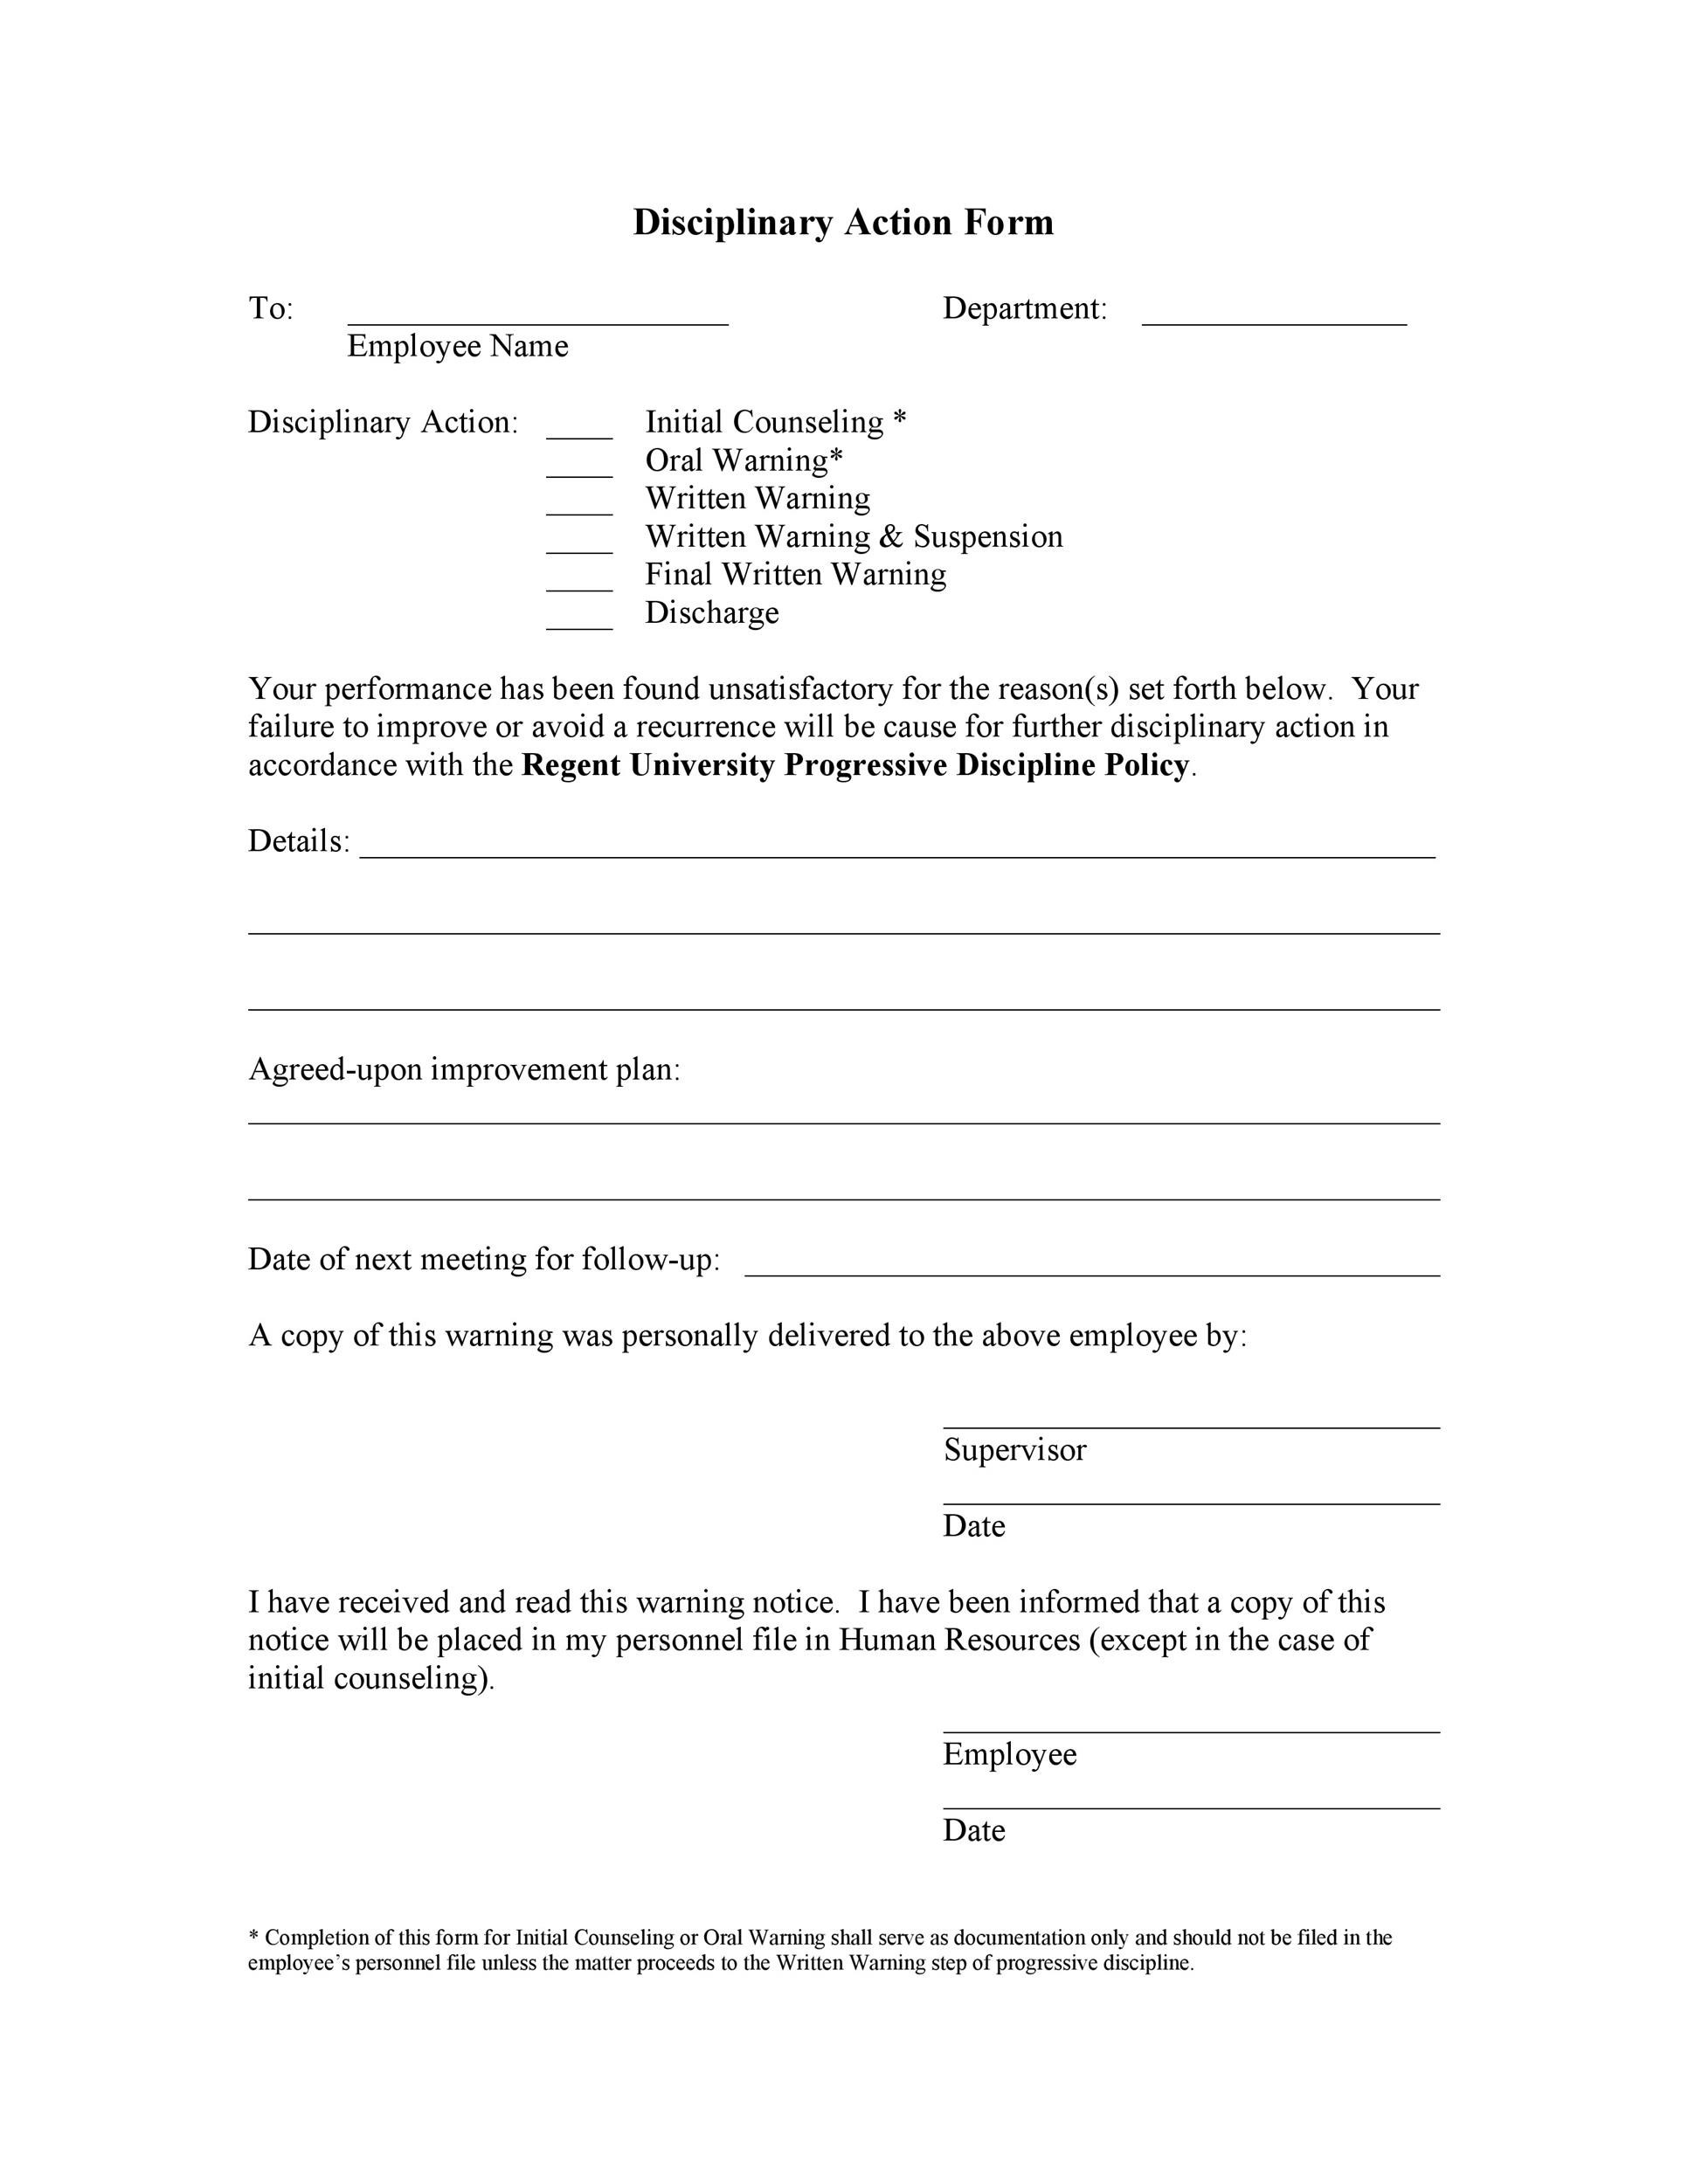 Free Disciplinary Action Form 11